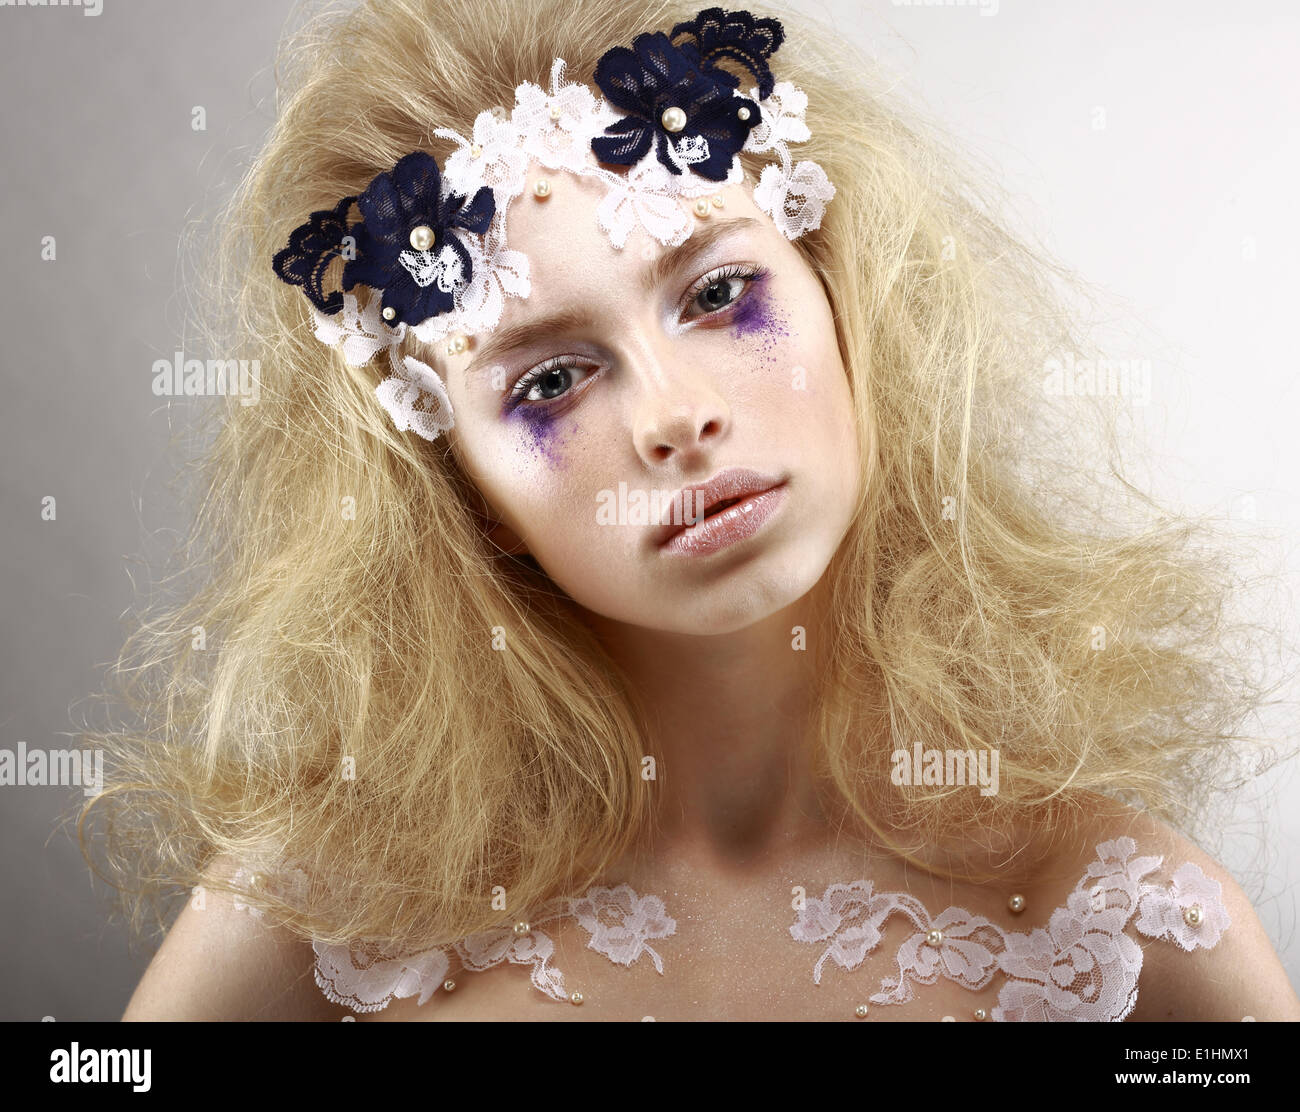 Young Styled Blonde with Colorful Makeup - Blue Eye Shadows. Arts - Stock Image